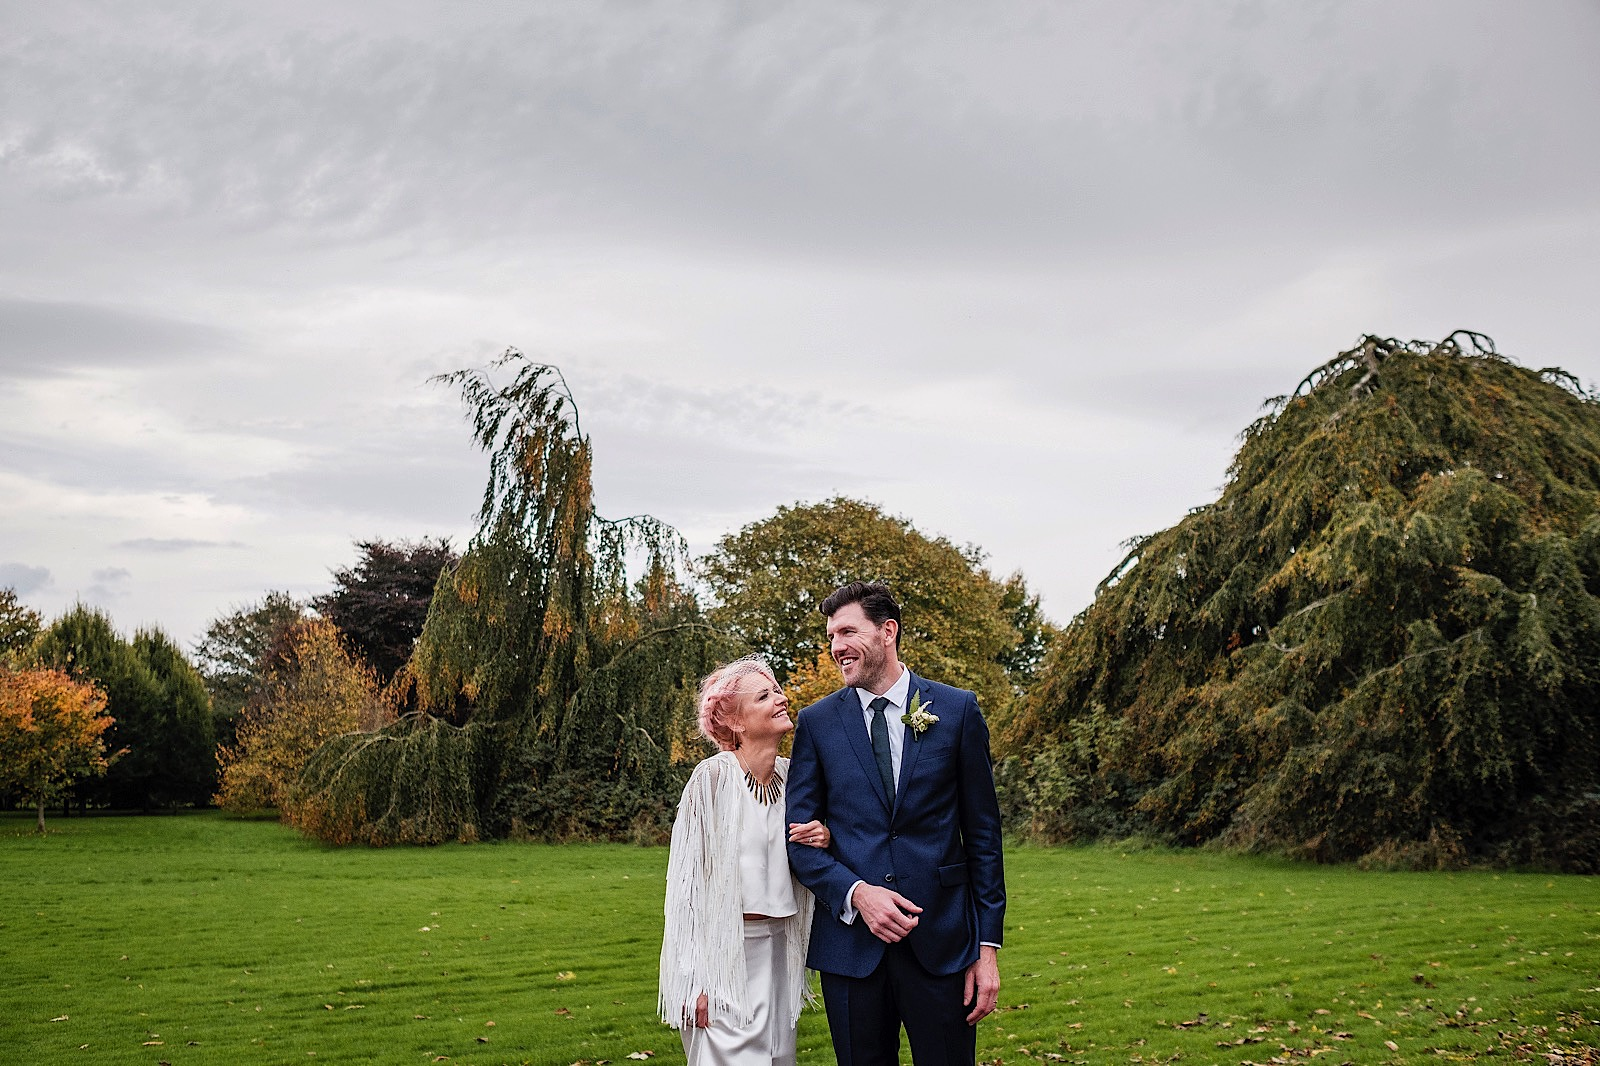 Bride & Groom in grounds of Bellinter House in Ireland